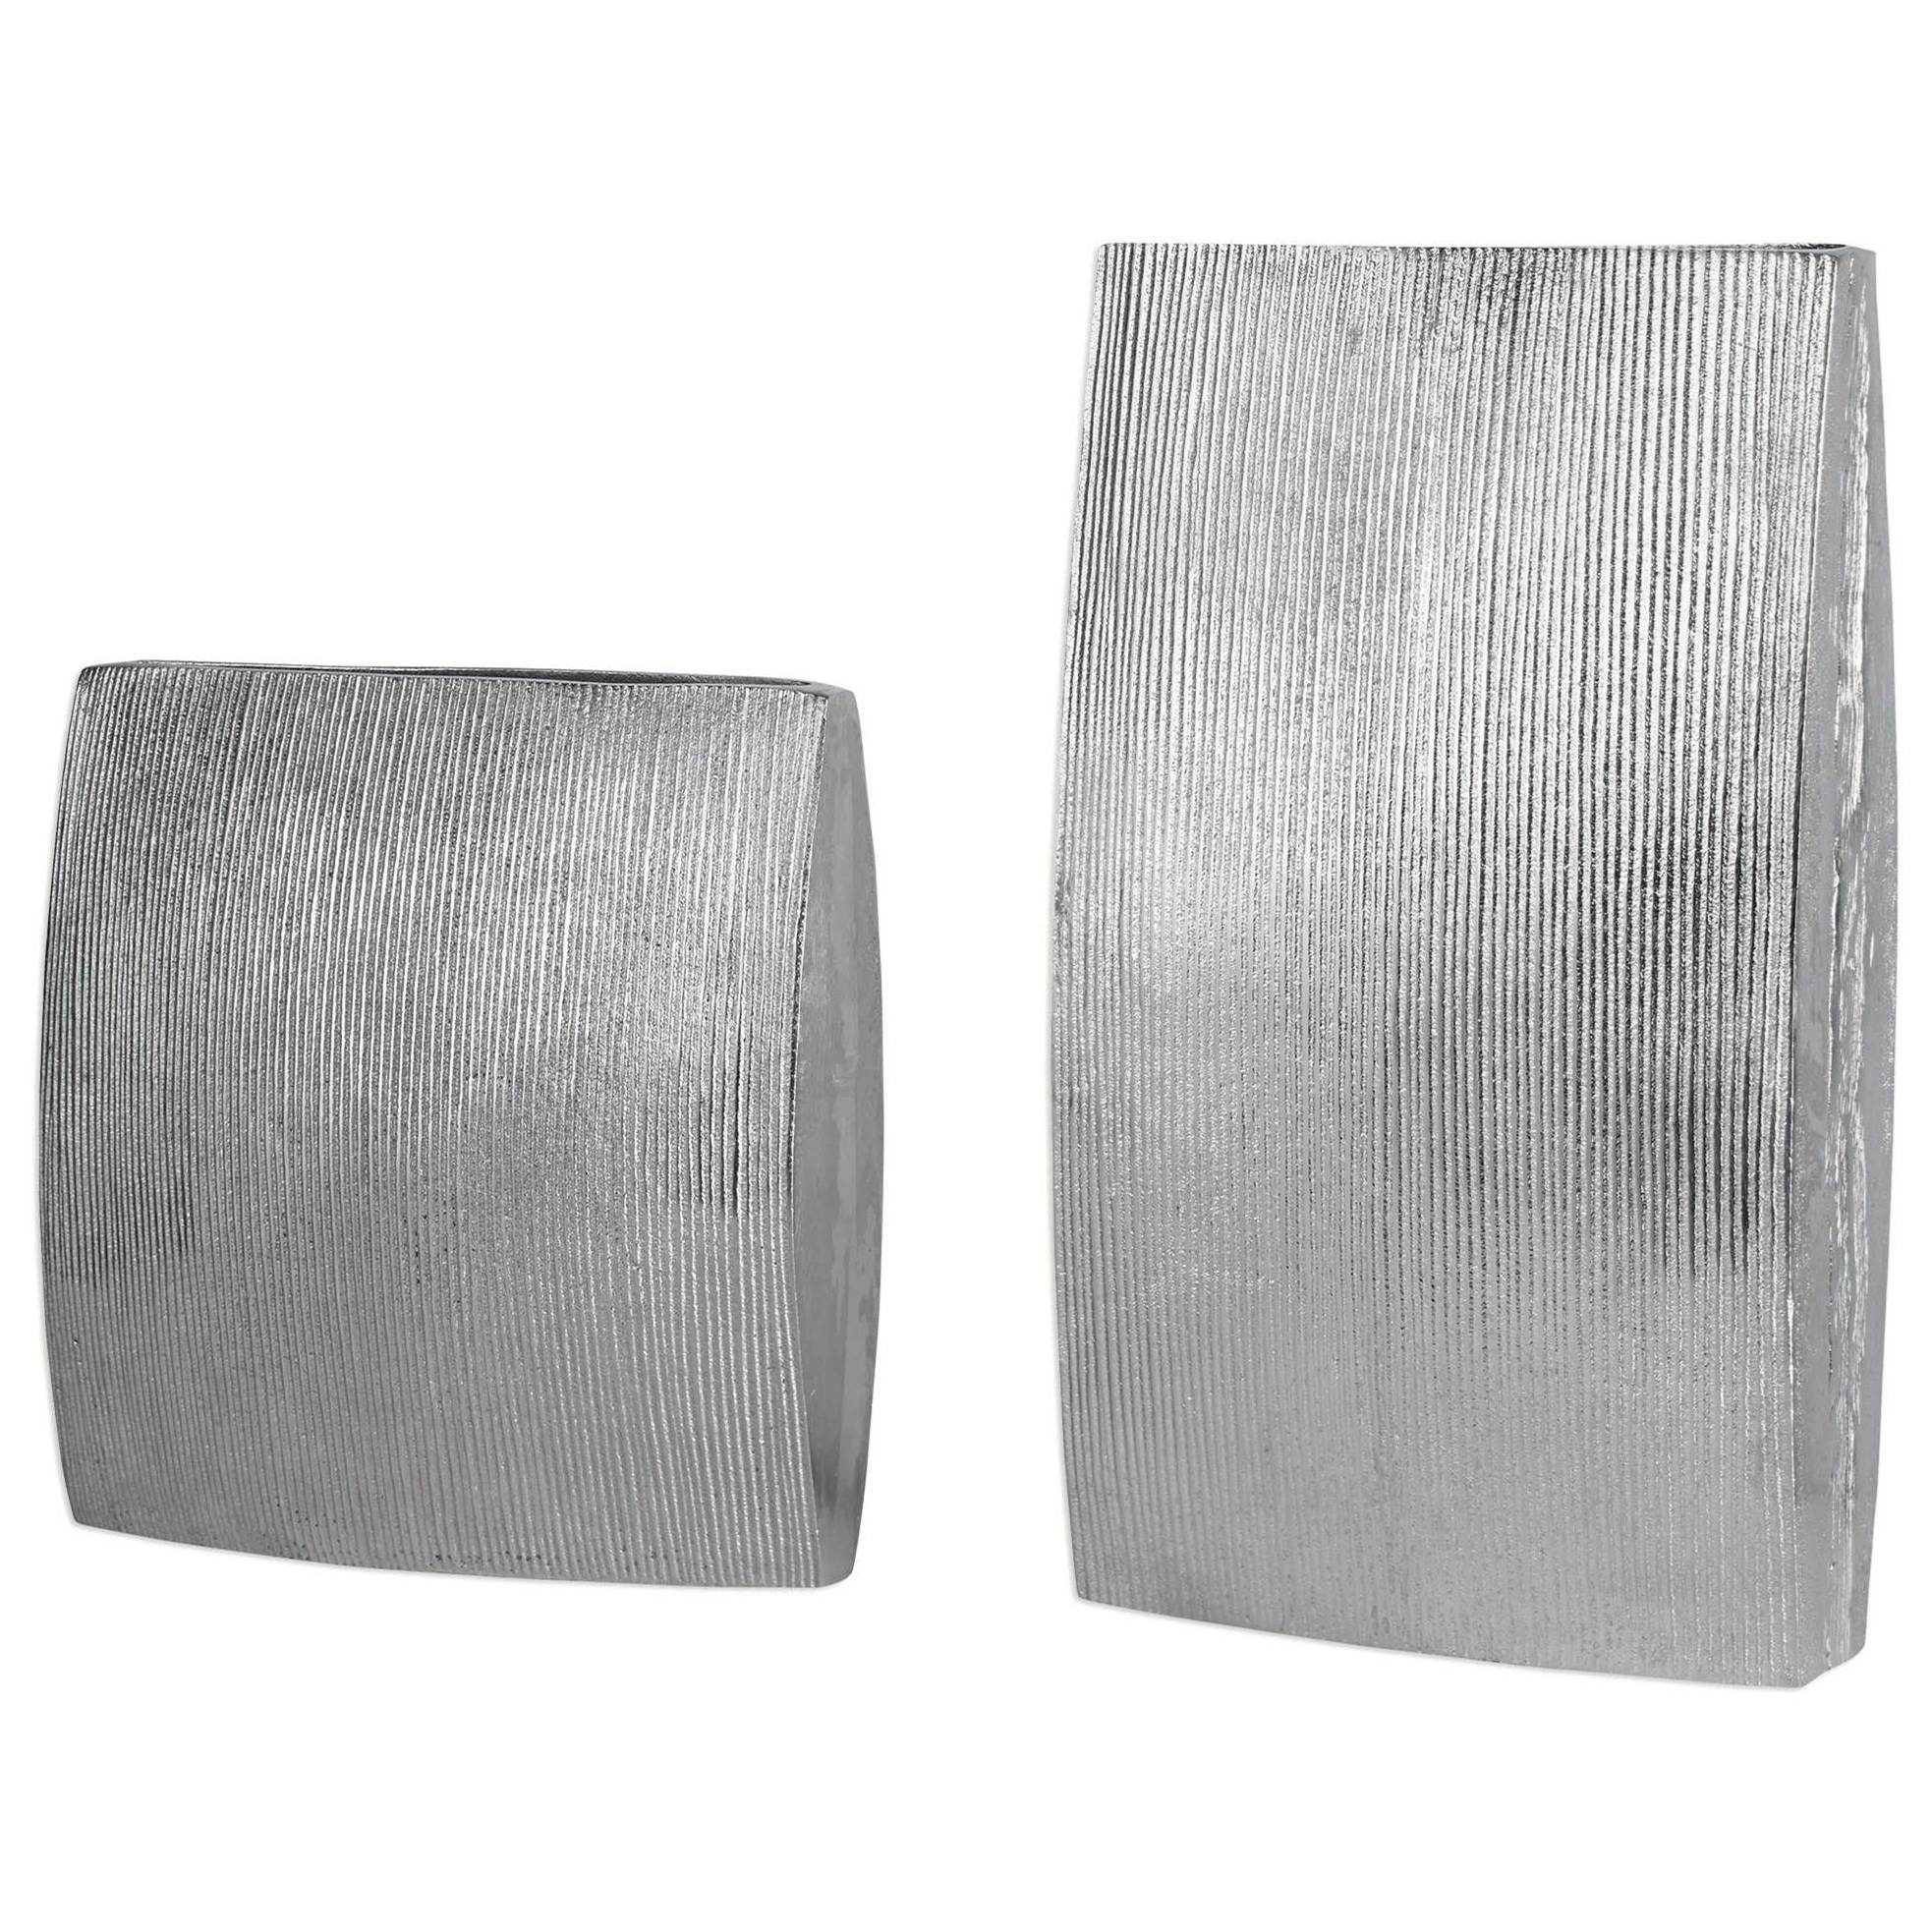 Darla Aluminum Vases (Set of 2)